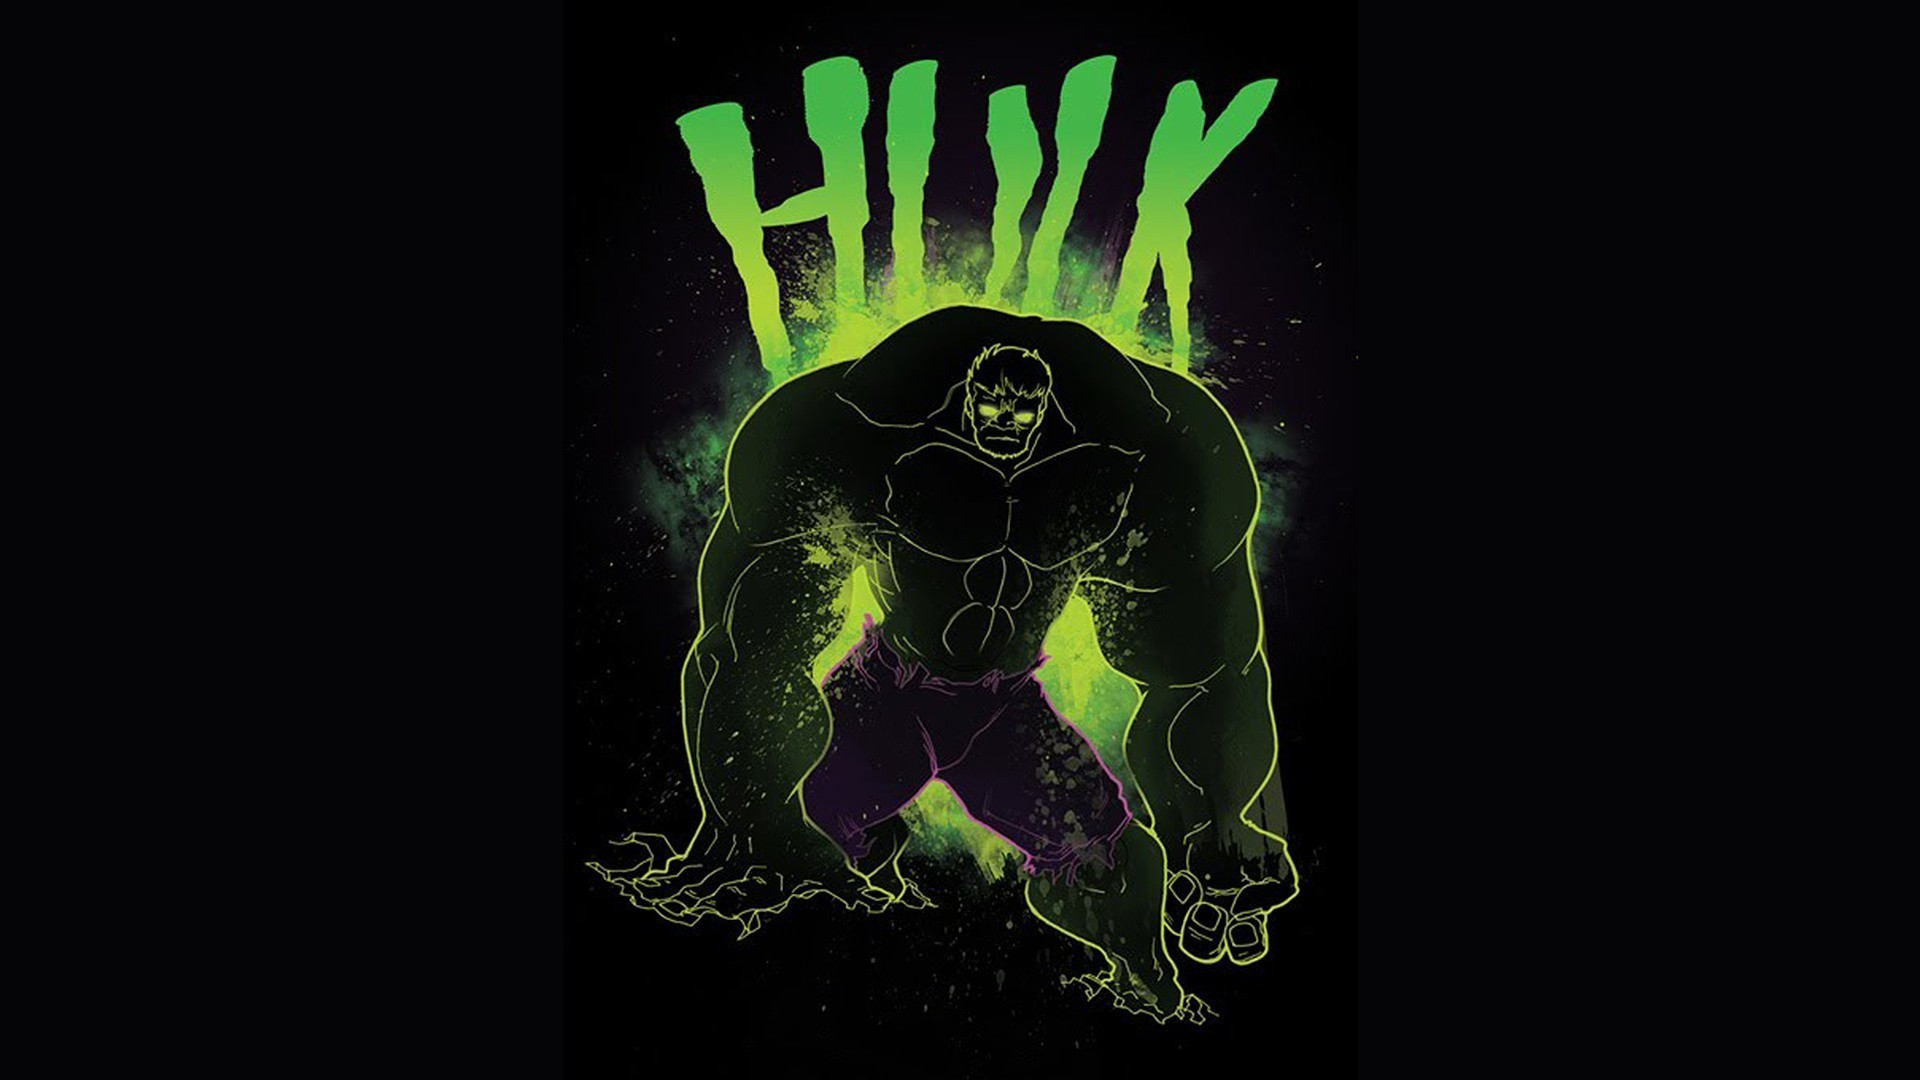 Marvel Hulk Wallpaper 90 images in Collection Page 3 1920x1080